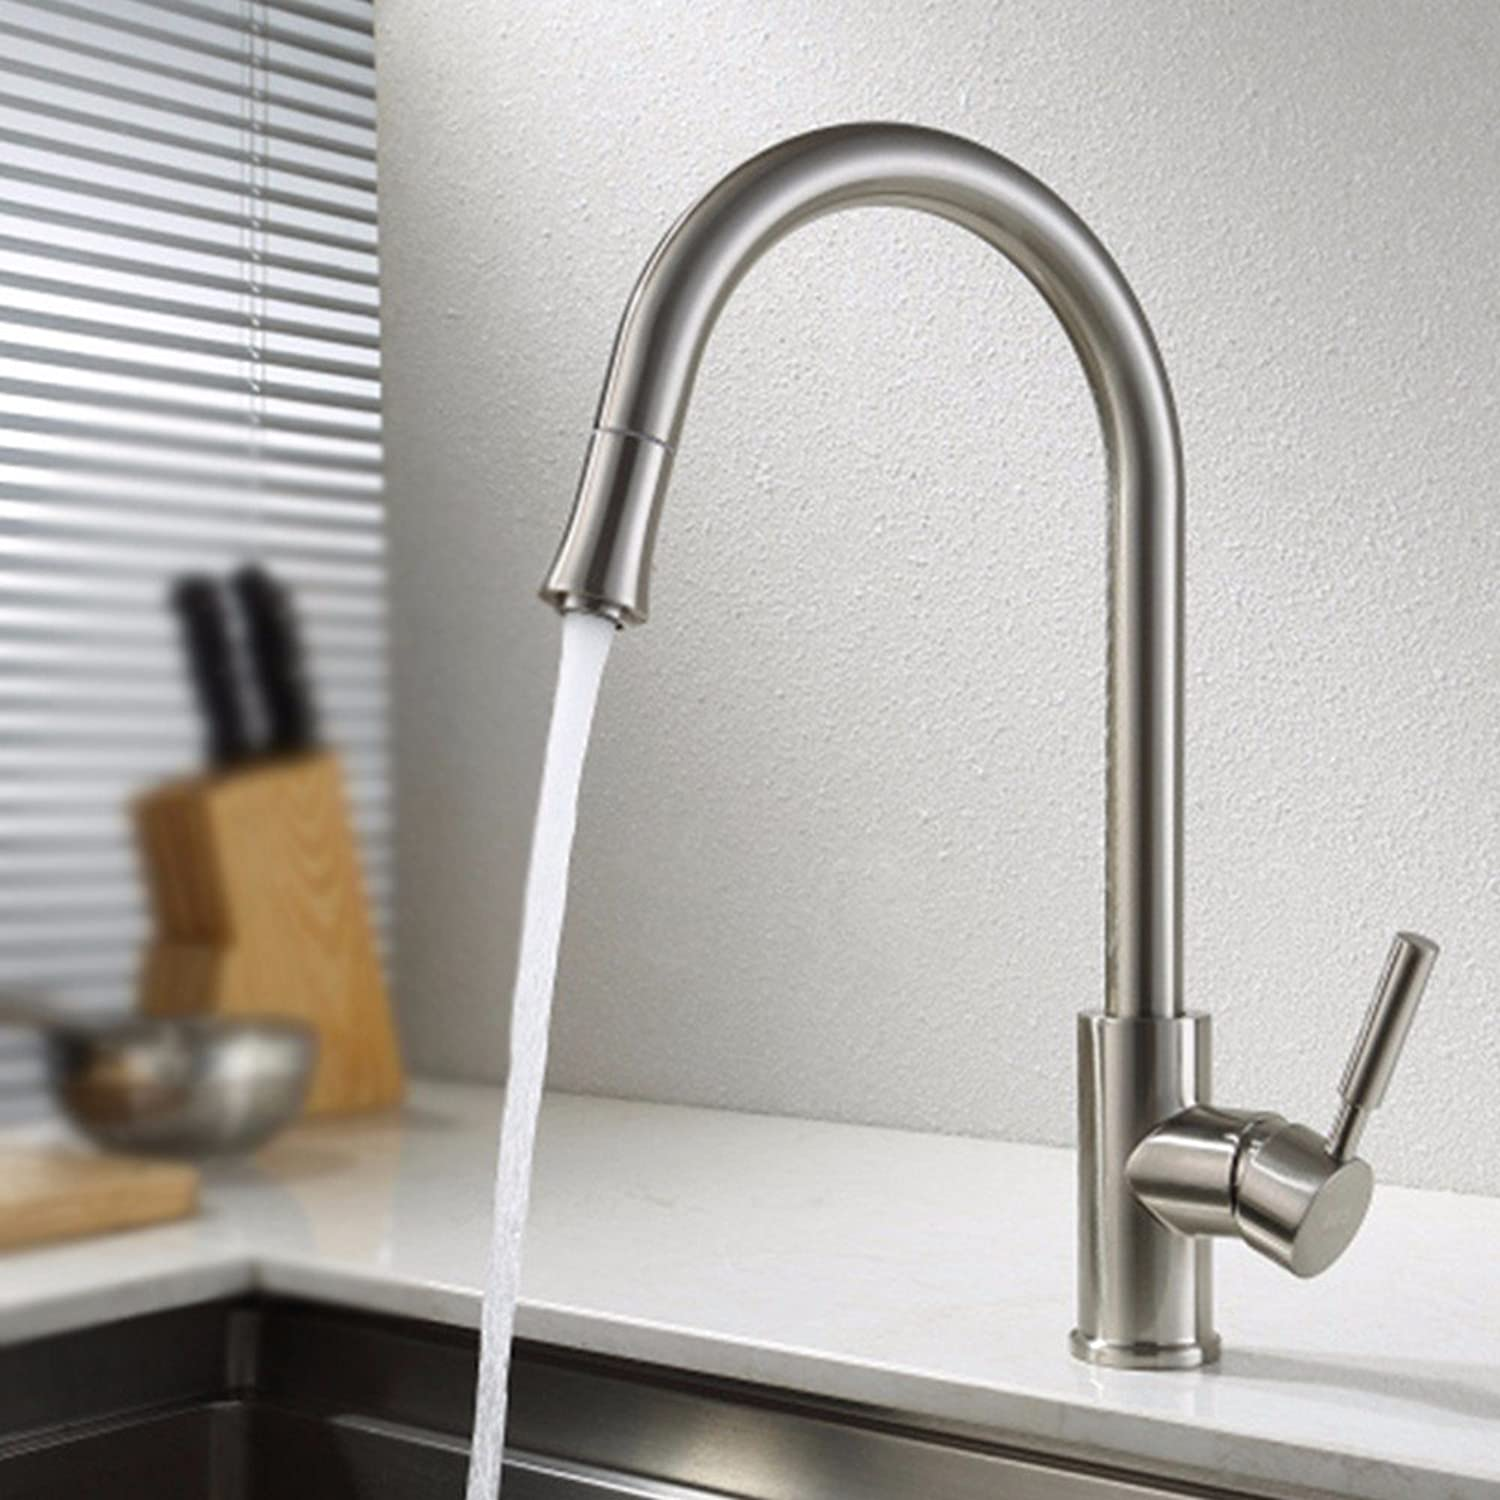 Hlluya Professional Sink Mixer Tap Kitchen Faucet Hot and cold, and can be redated, Stainless Steel Sinks Faucets,G